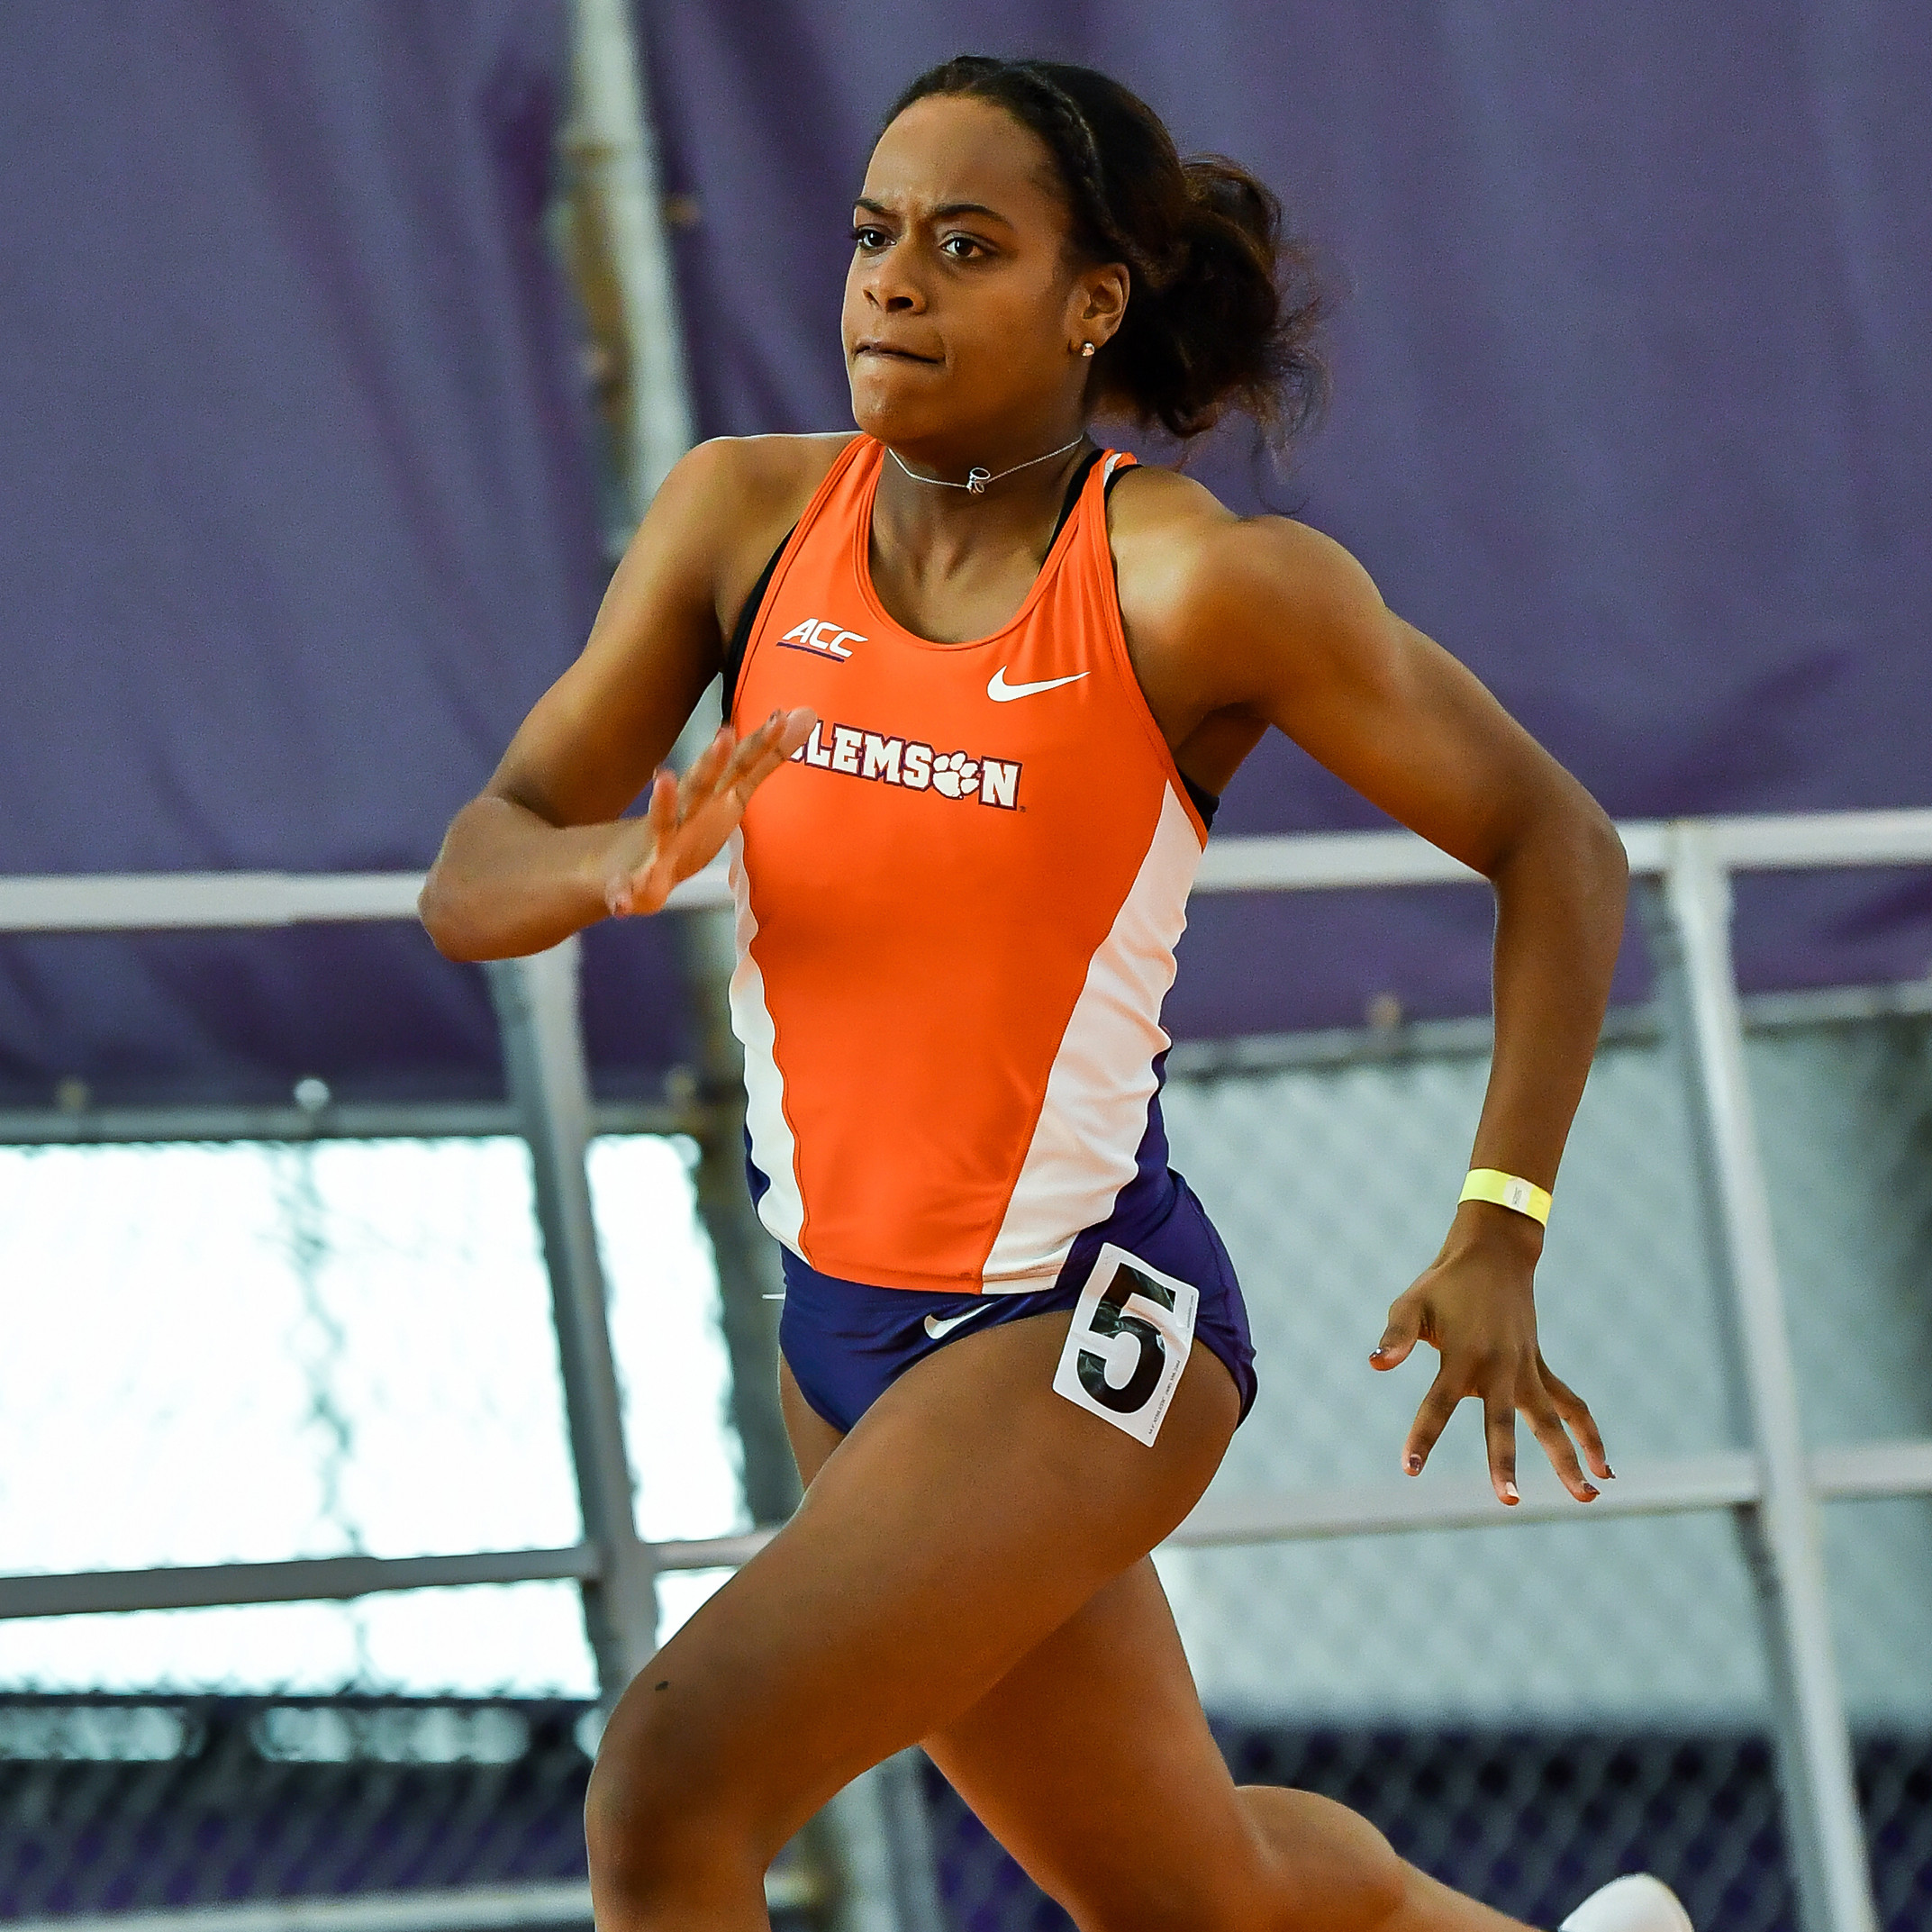 Clemson Concludes Action in Texas